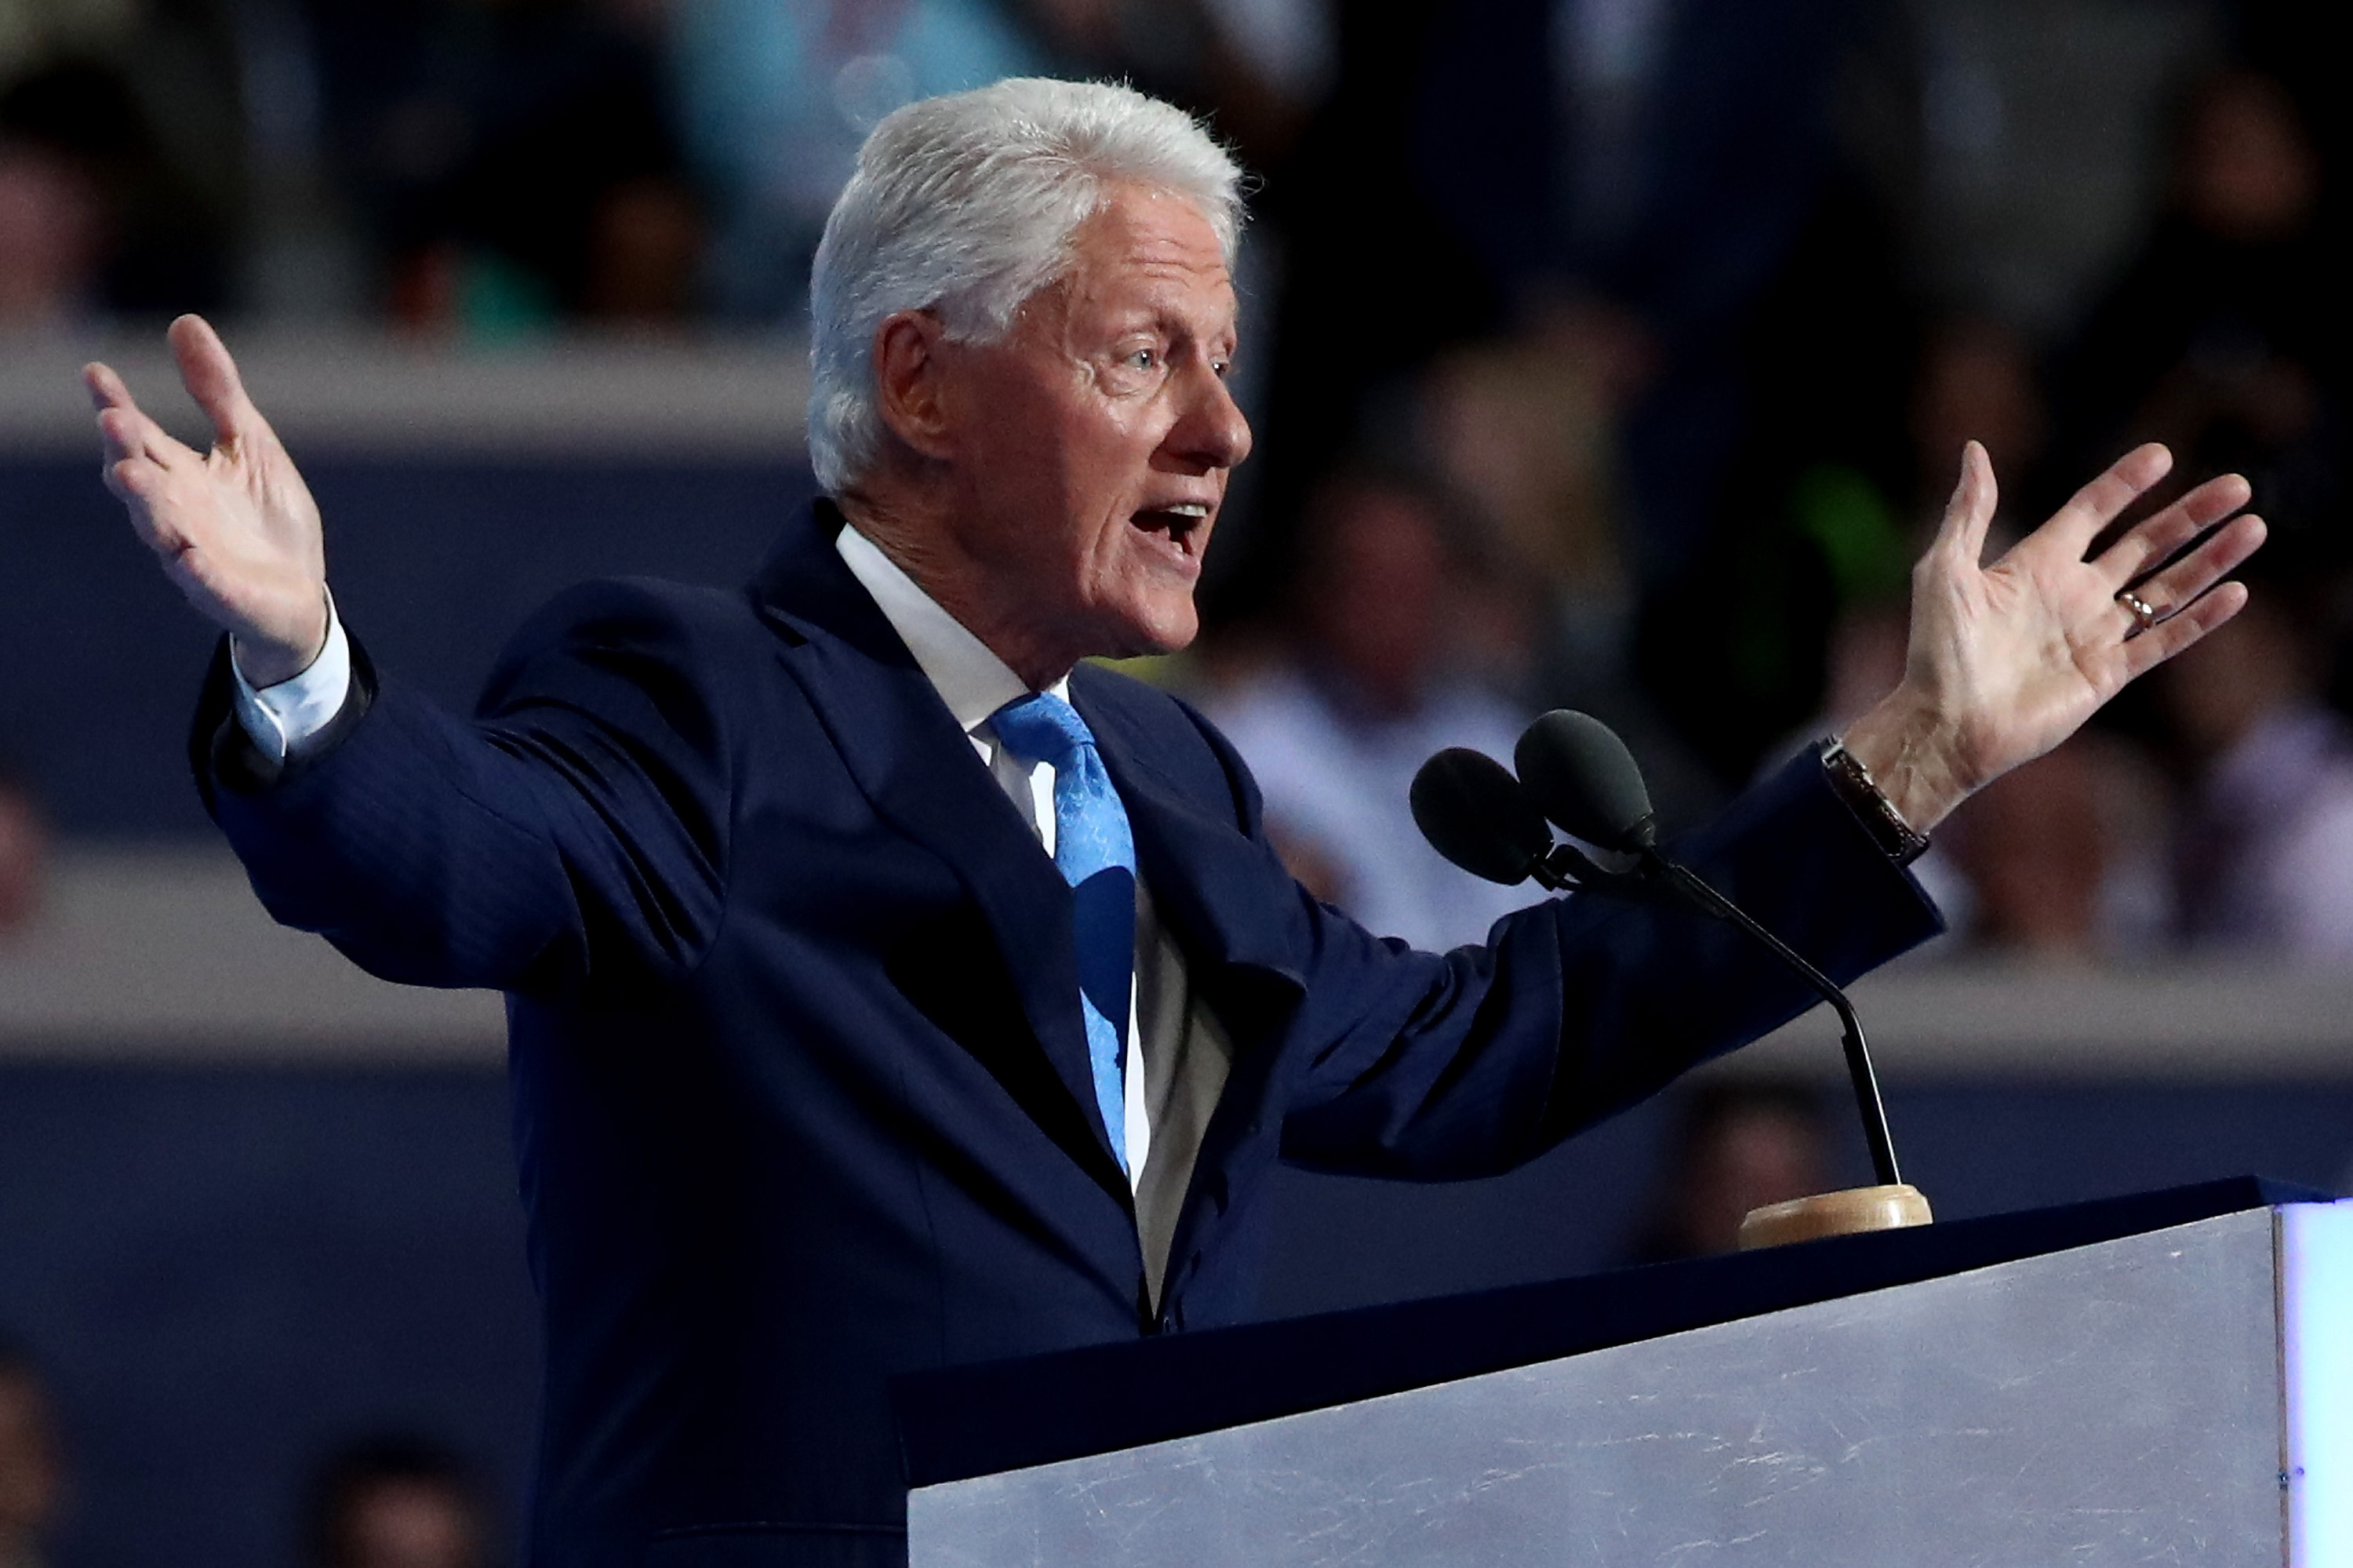 Former President Bill Clinton delivers remarks on the second day of the Democratic National Convention at the Wells Fargo Center, July 26, 2016 in Philadelphia, Pennsylvania. (Getty Images)